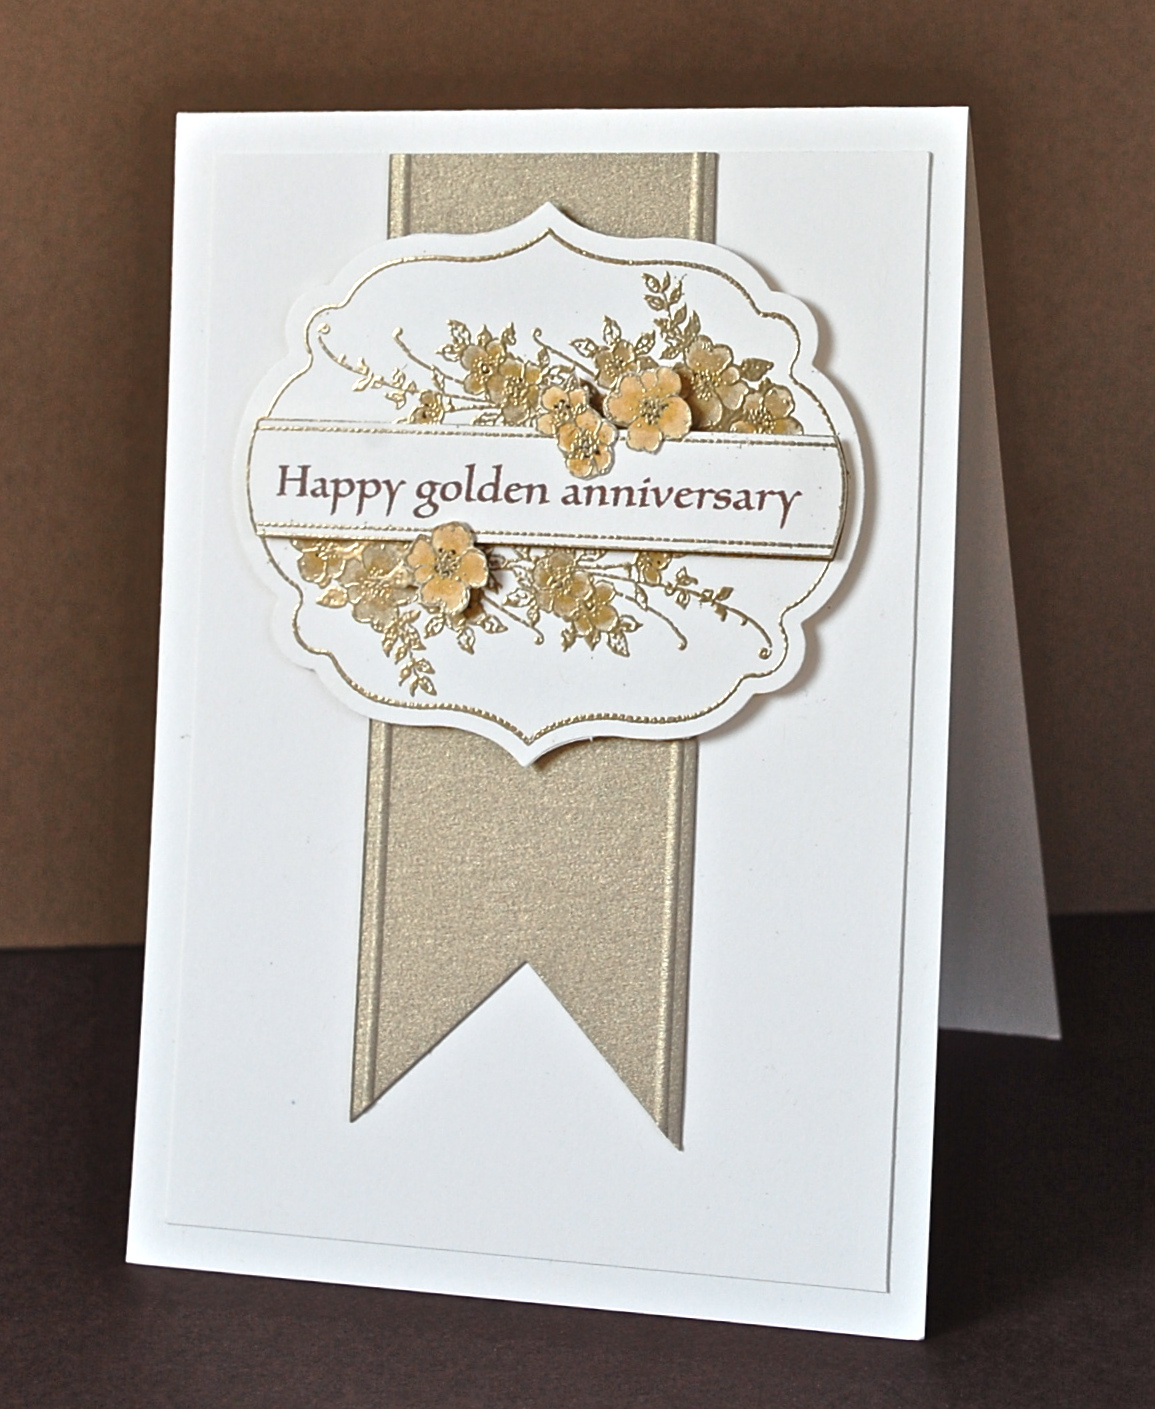 Stampin' Up ideas and supplies from Vicky at Crafting ...